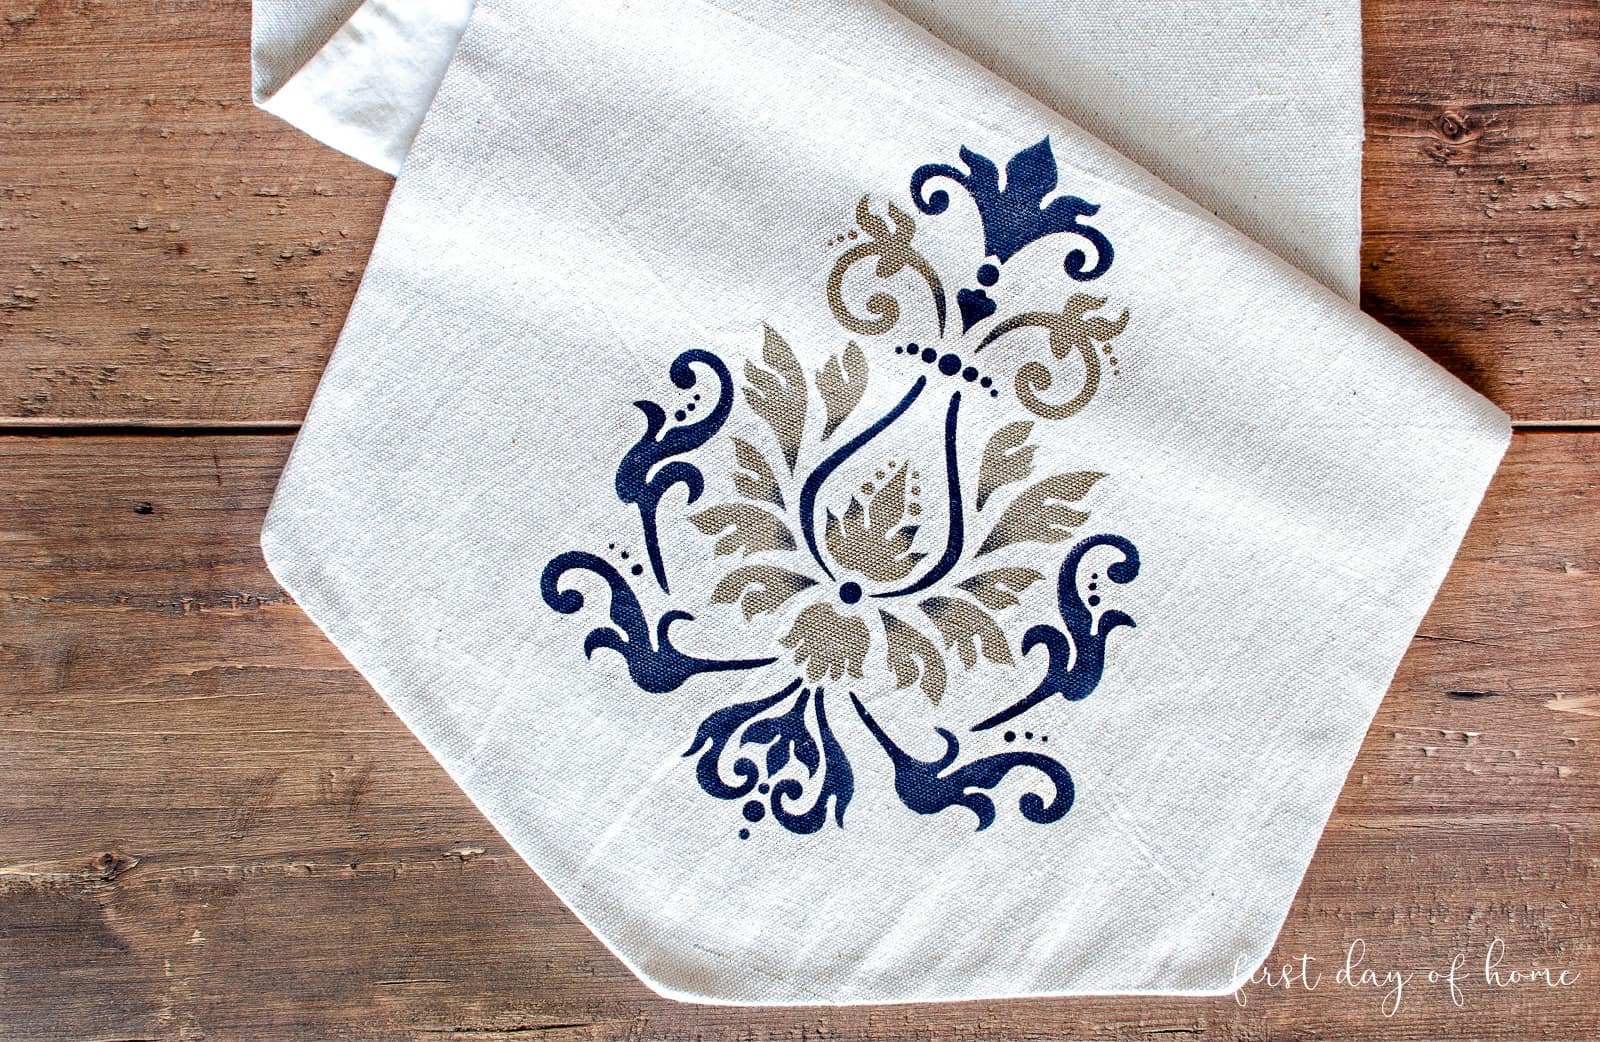 Painted canvas table runner using Americana stencil design in brocade motif